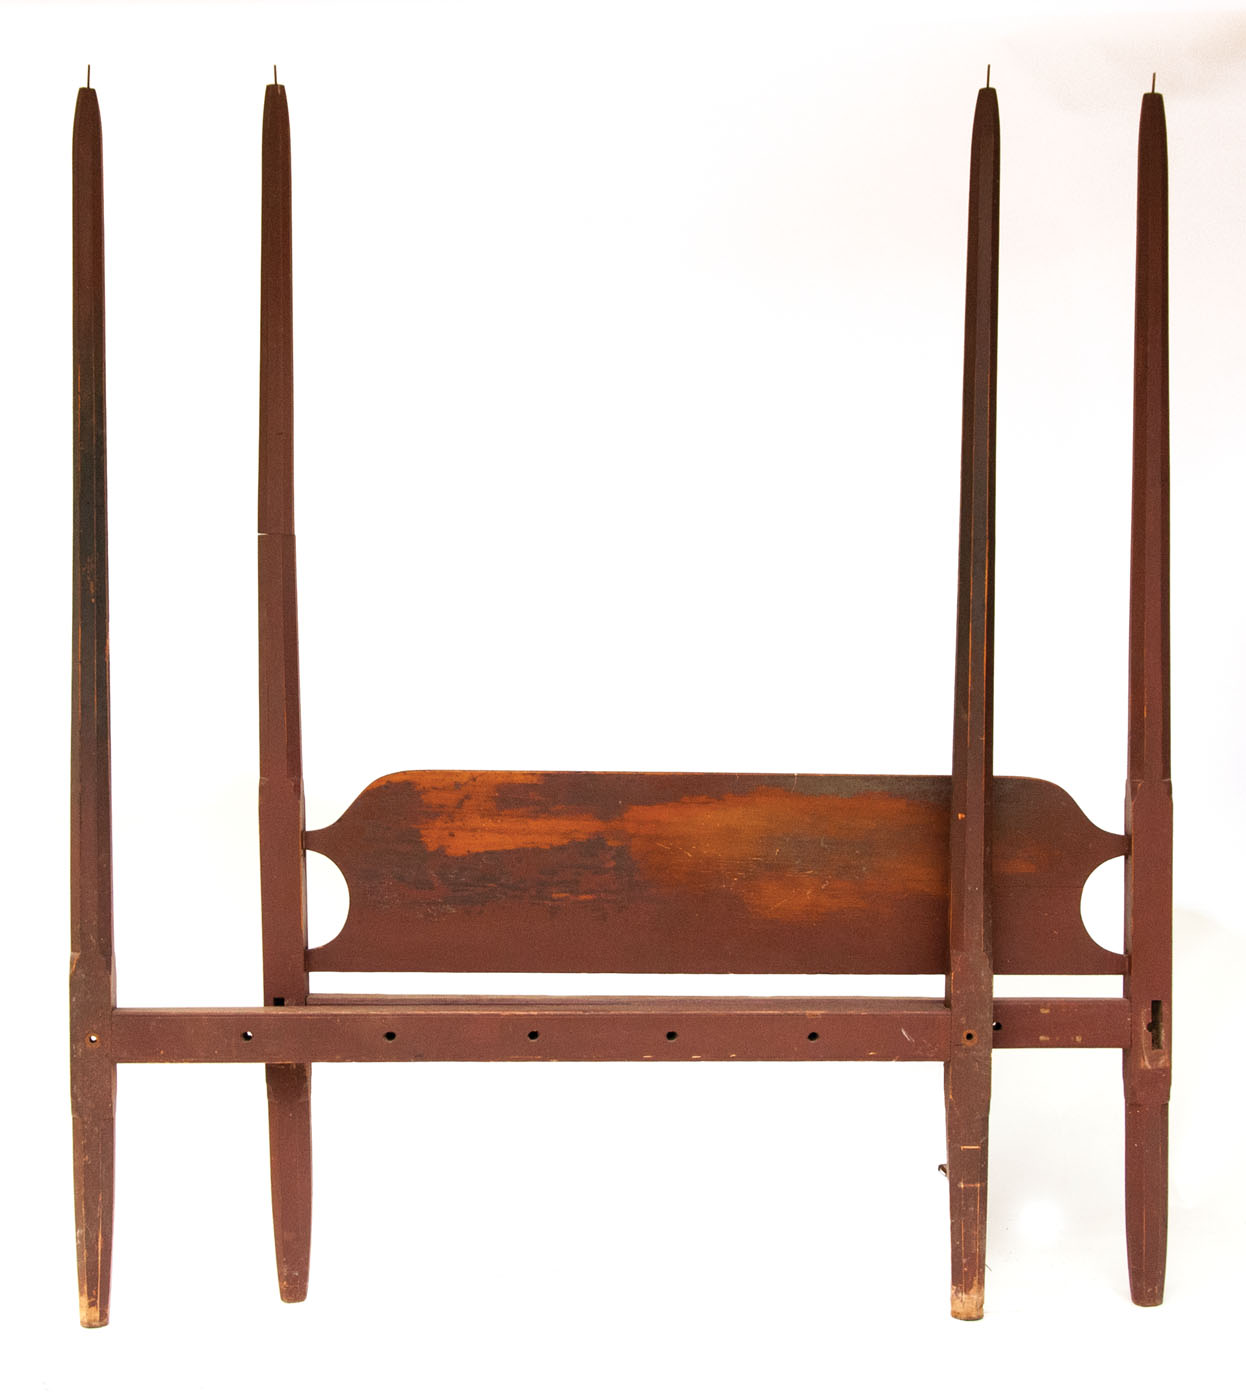 Antique Pencil Post Rice Bed Gray White And Copper Bedroom: Lot 165: Late 18th/Early 19th C. Pencil Post Bed